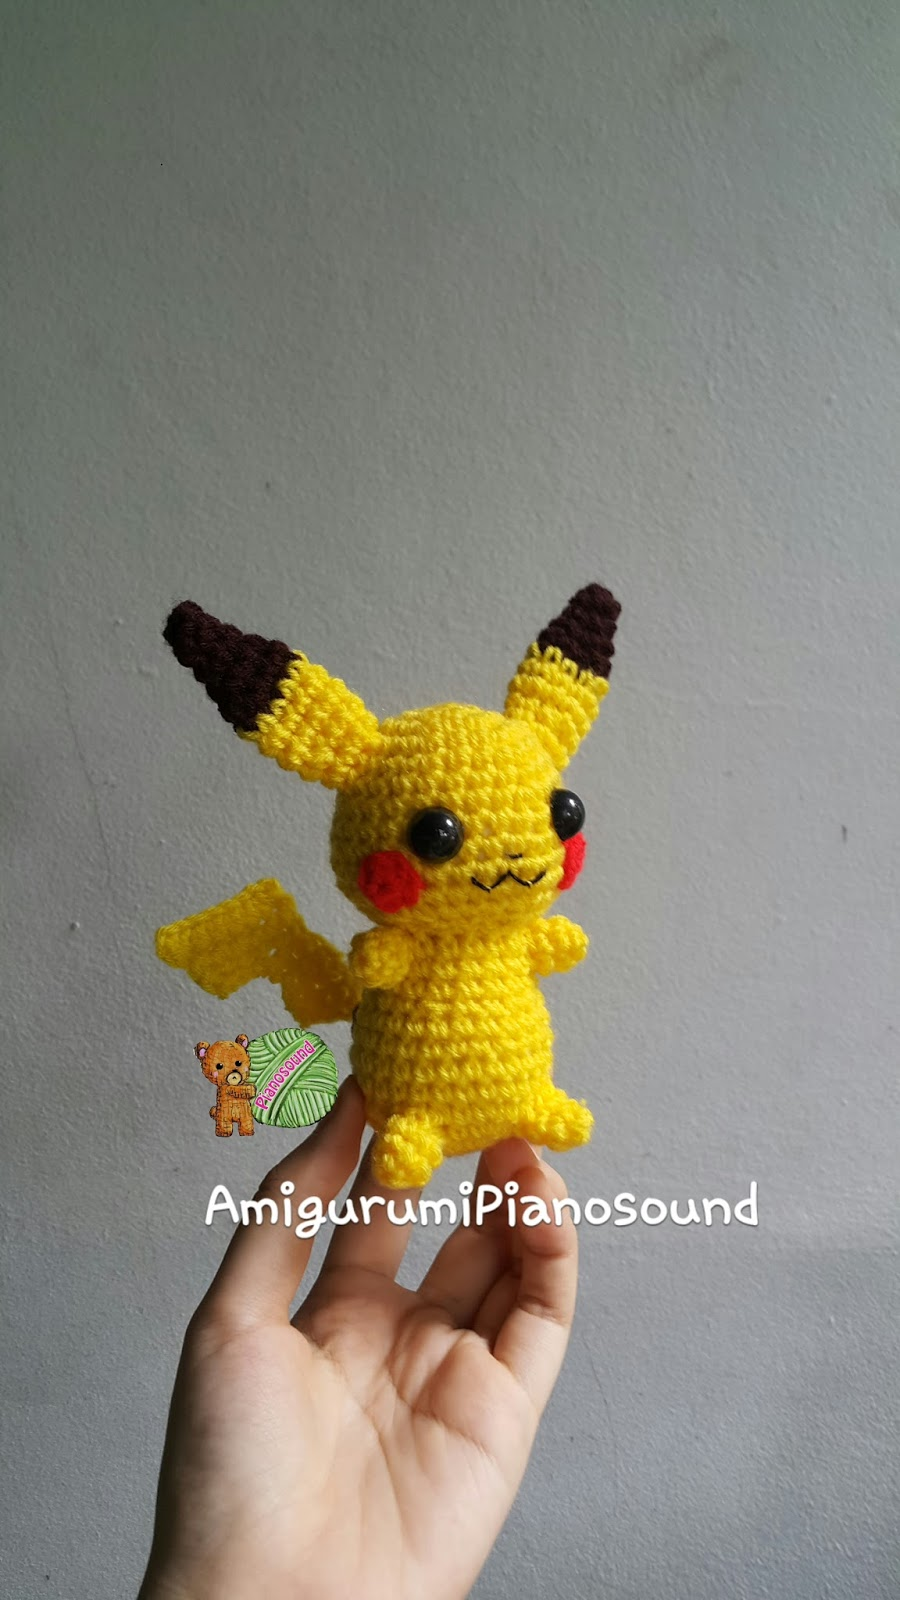 Let's Move The Topic Back To Our Doll Today, It's Pikachu! I Think Most  People Have Heard Of The Name Pikachu, Even Though They Are Not Watching  Its Anime